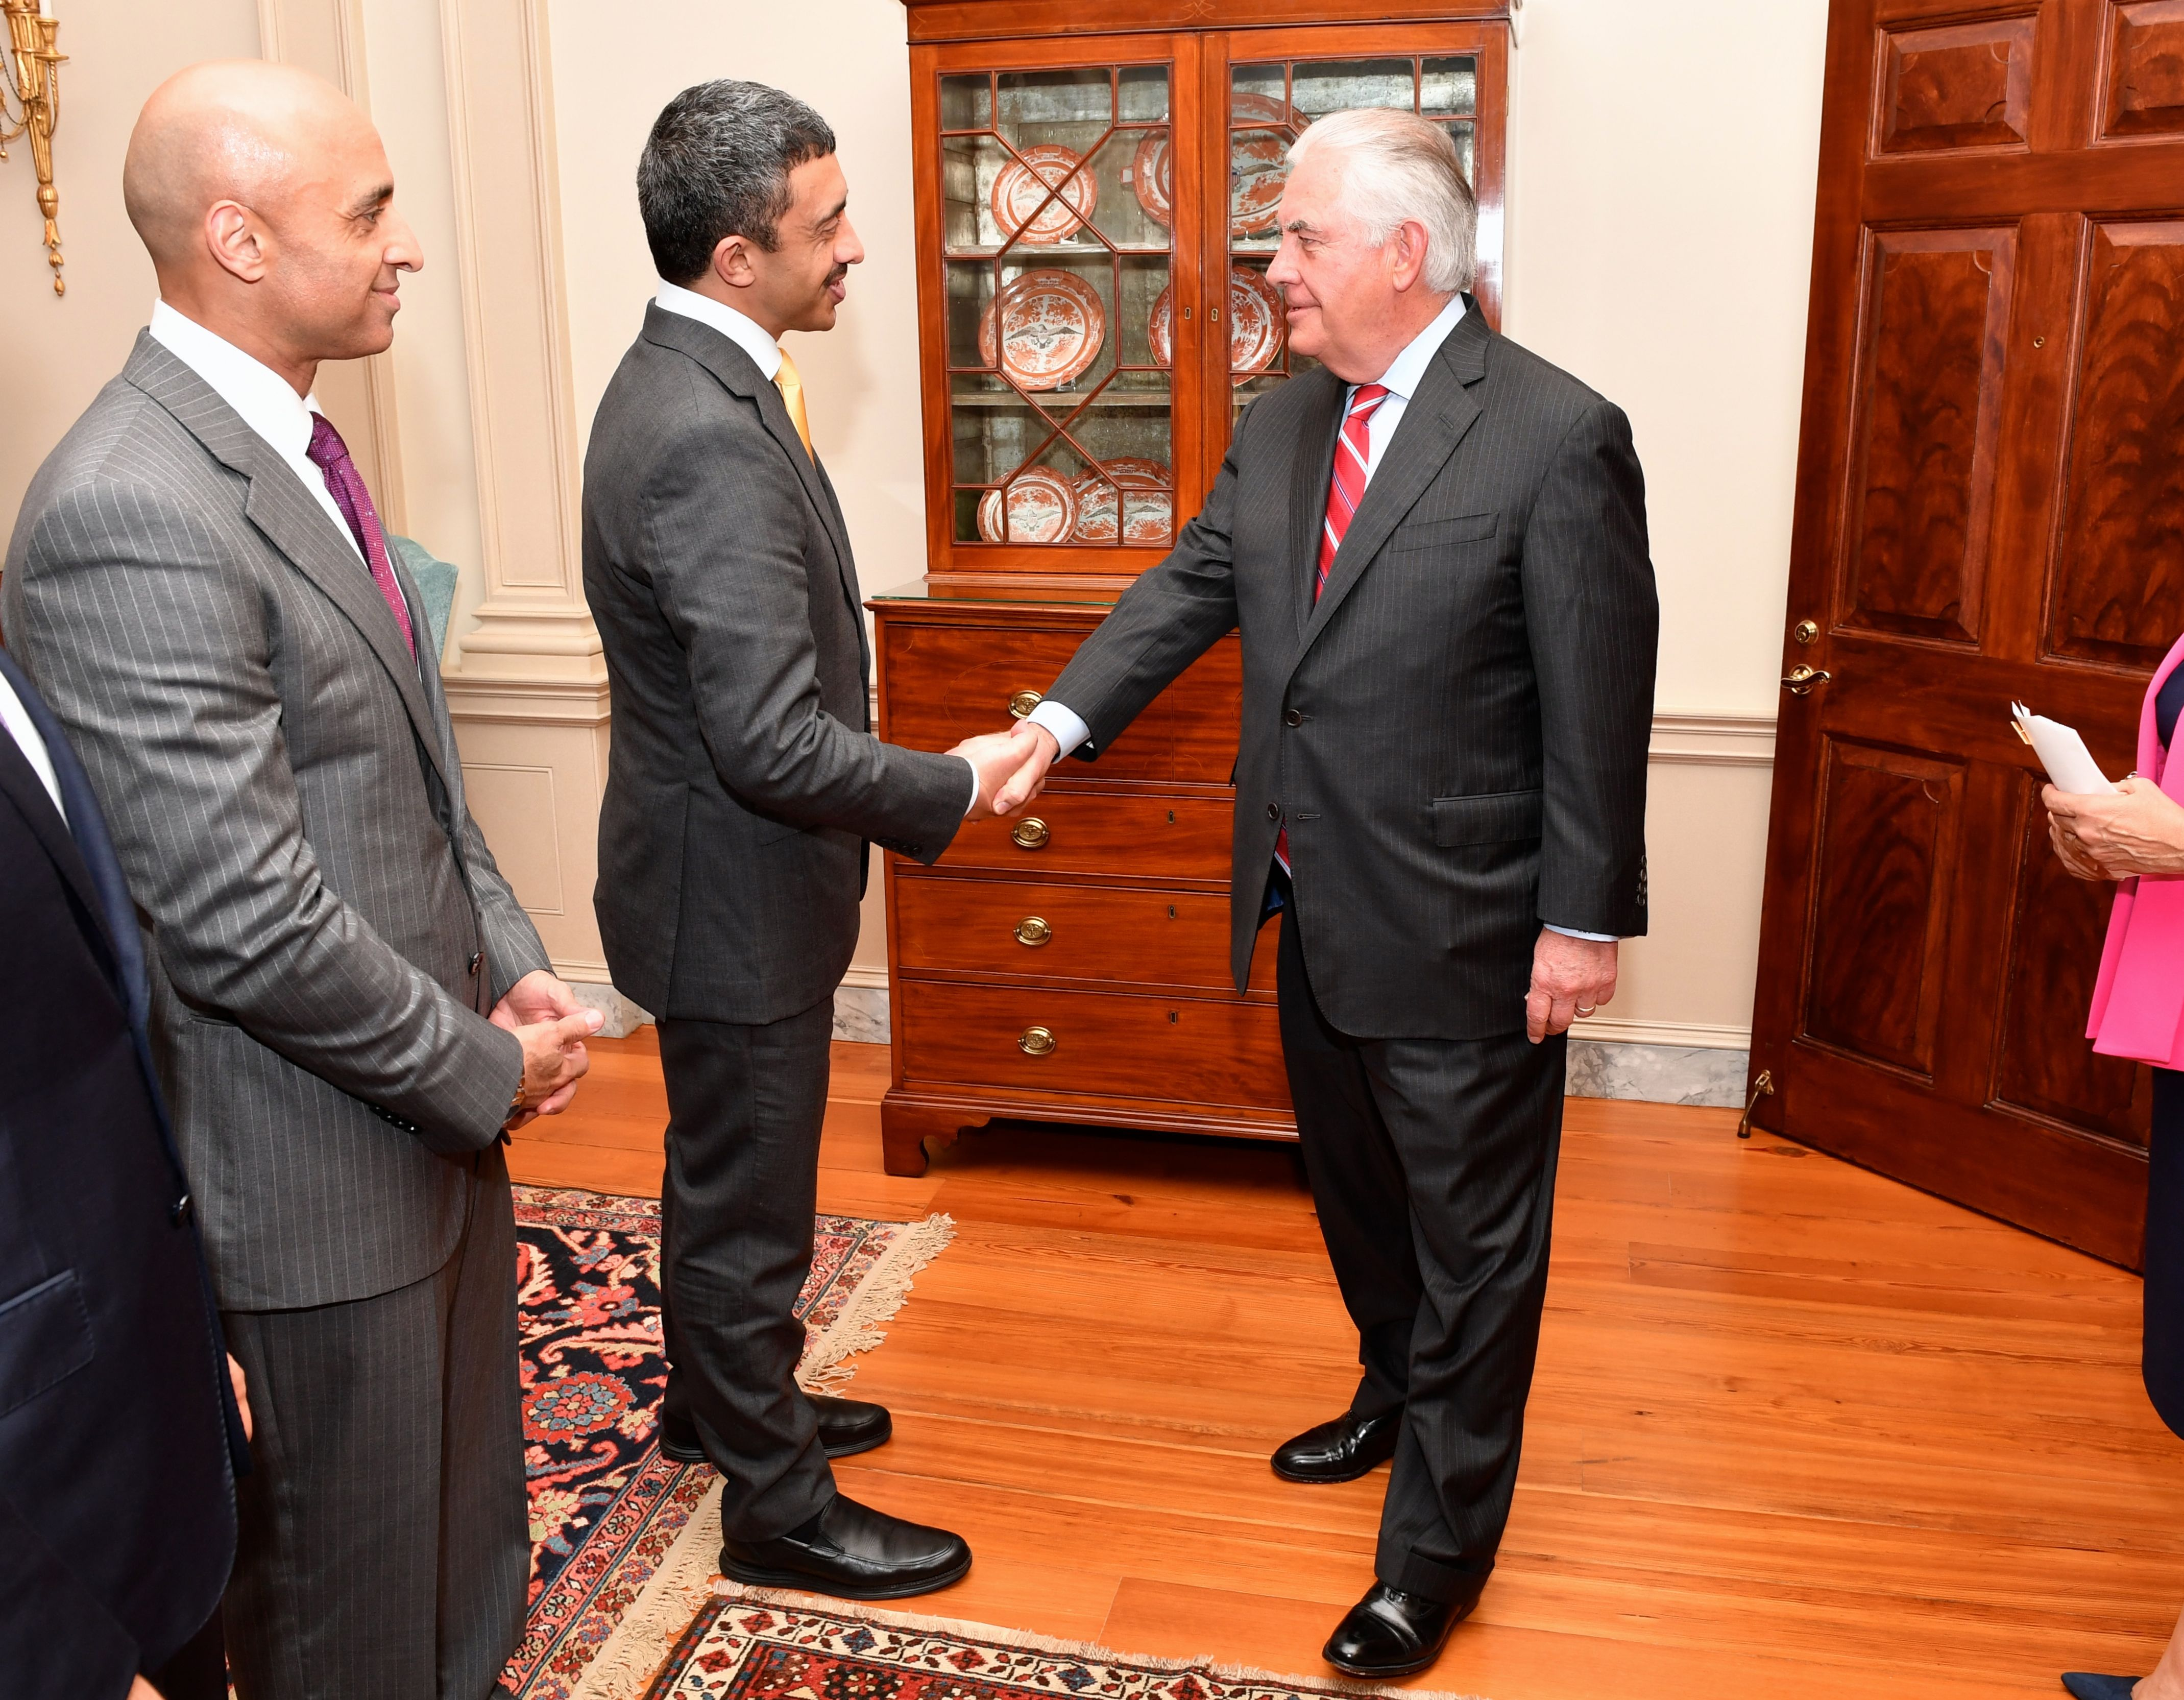 Filesecretary tillerson greets meets with uae foreign minister filesecretary tillerson greets meets with uae foreign minister abdullah bin zayed before their dinner m4hsunfo